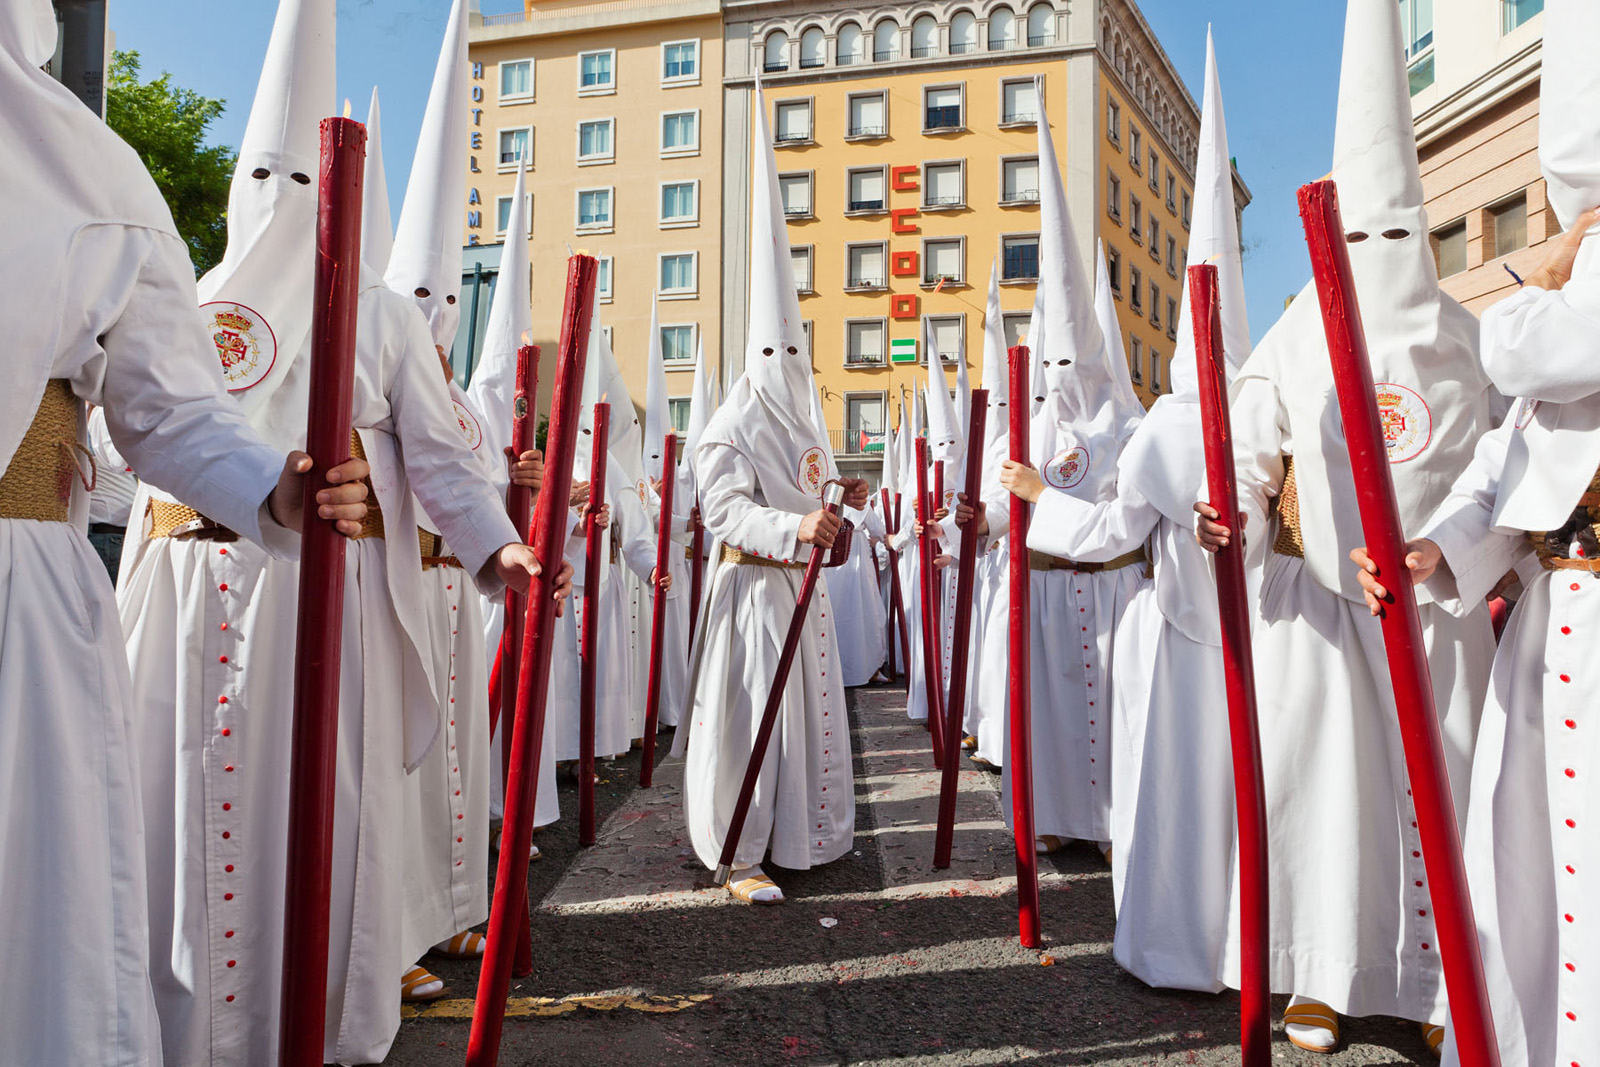 The relgious processions of Semana Santa in Seville the events and sights surrounding them.